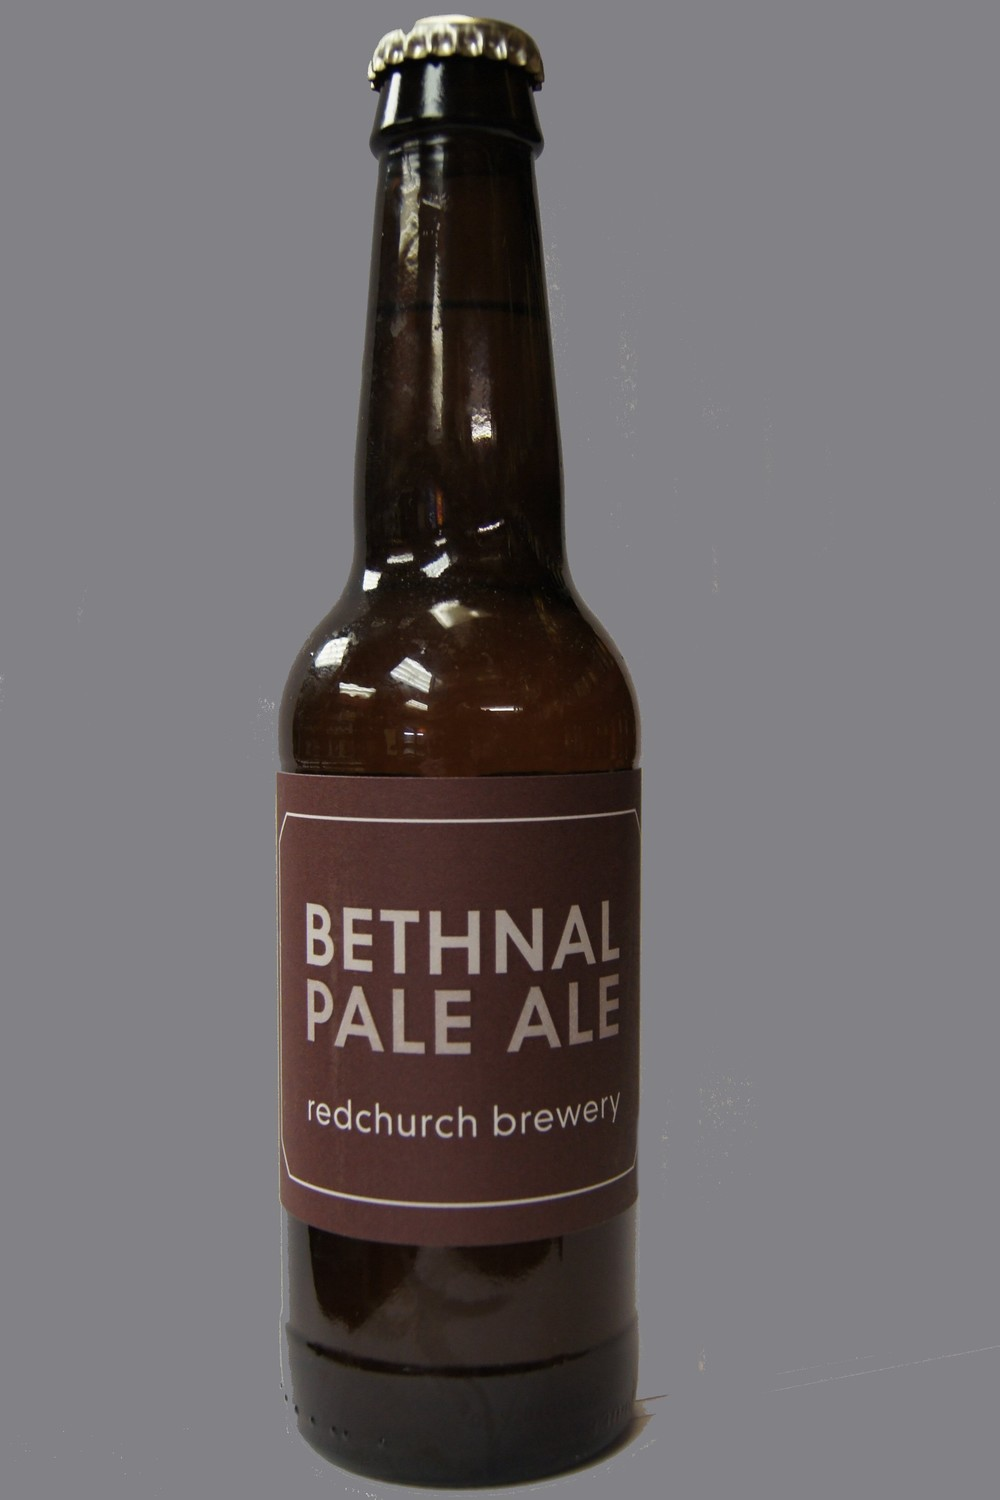 RED CHURCH BREWERY-Bethnal Pale Ale.jpg